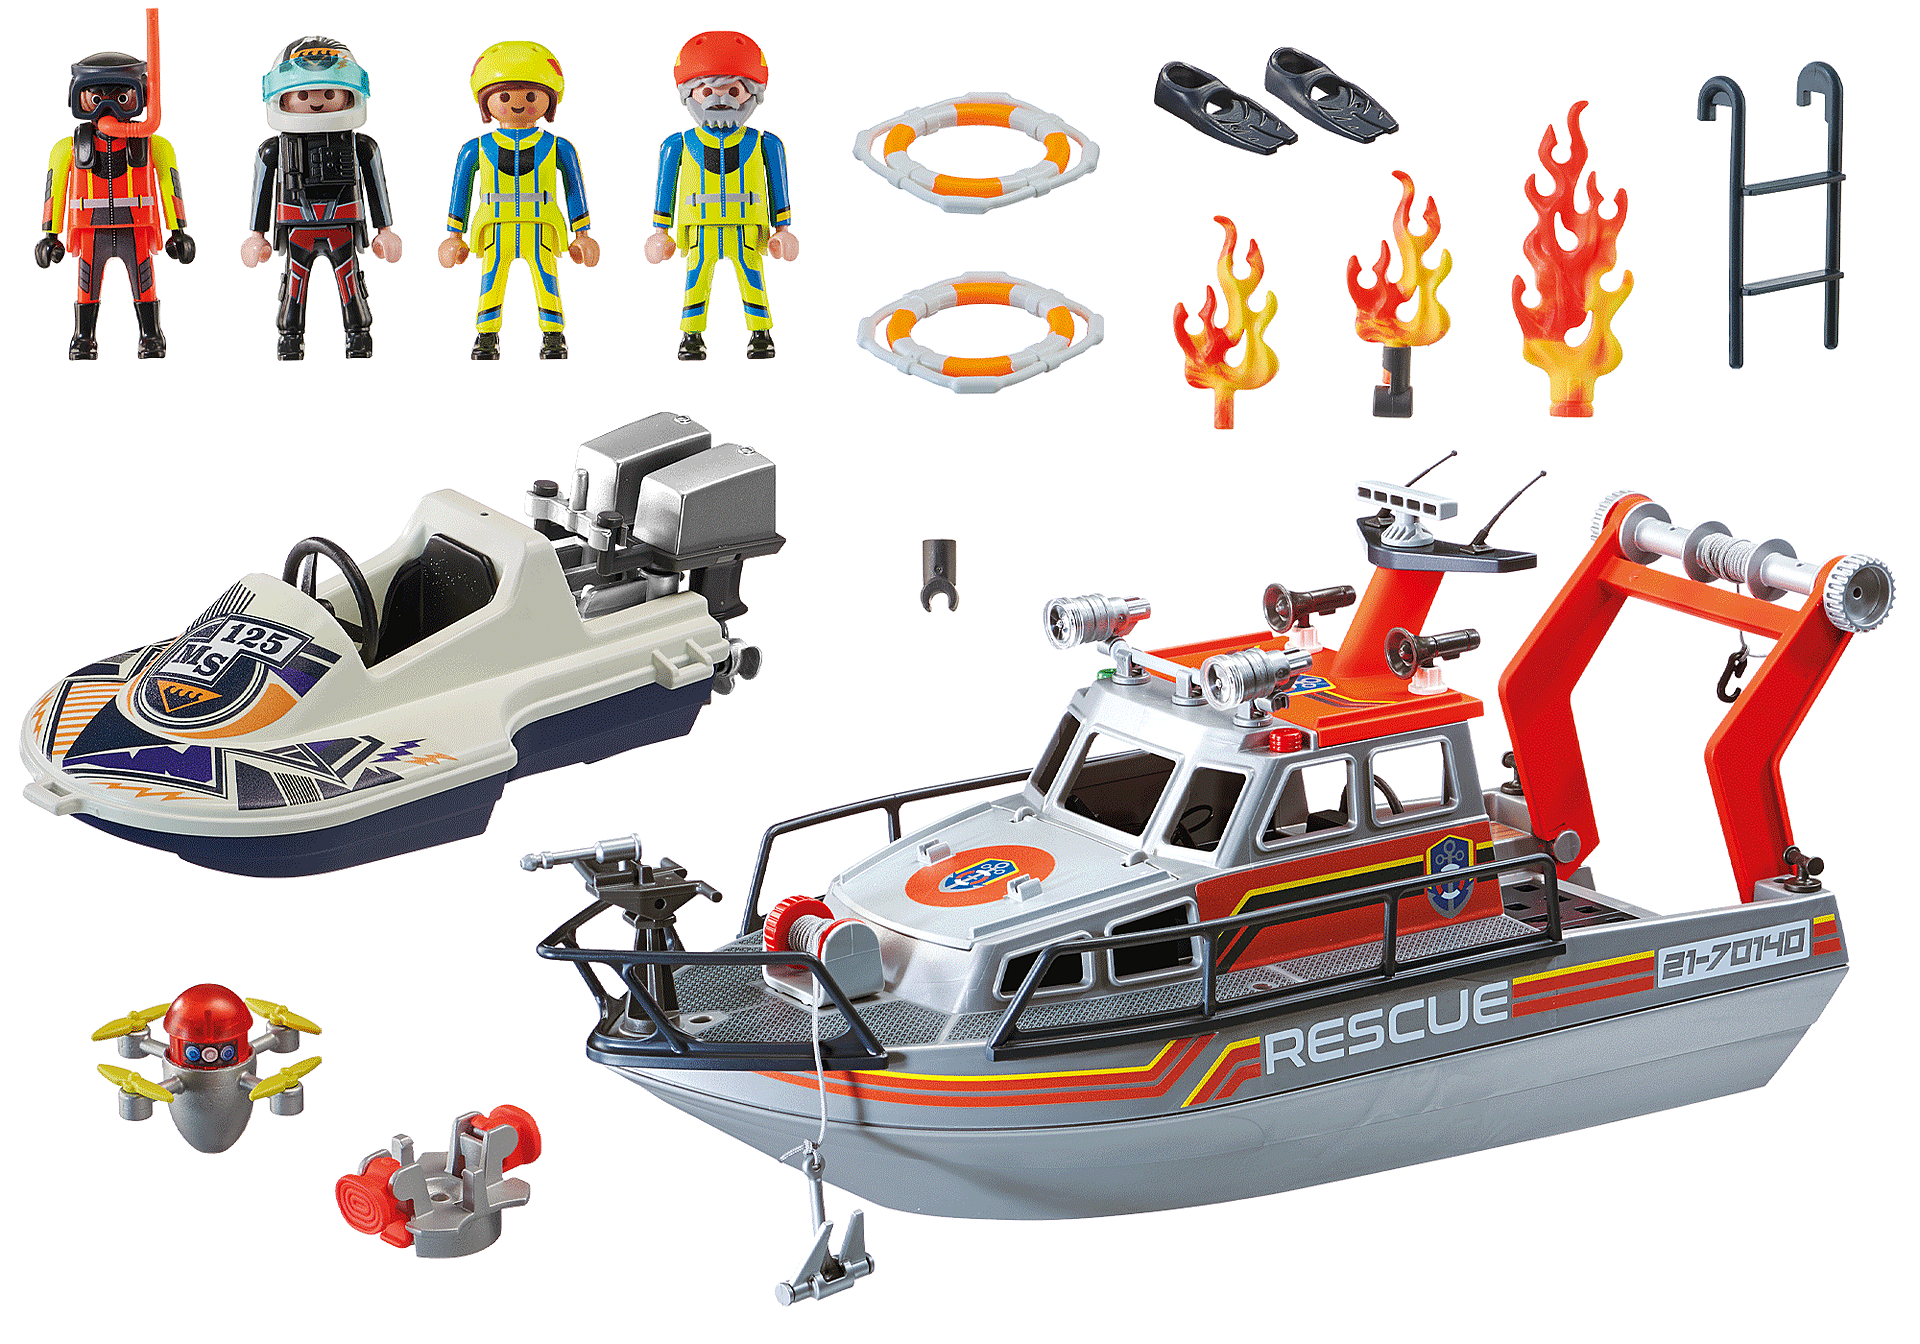 70140 Fire Rescue with Personal Watercraft zoom image3